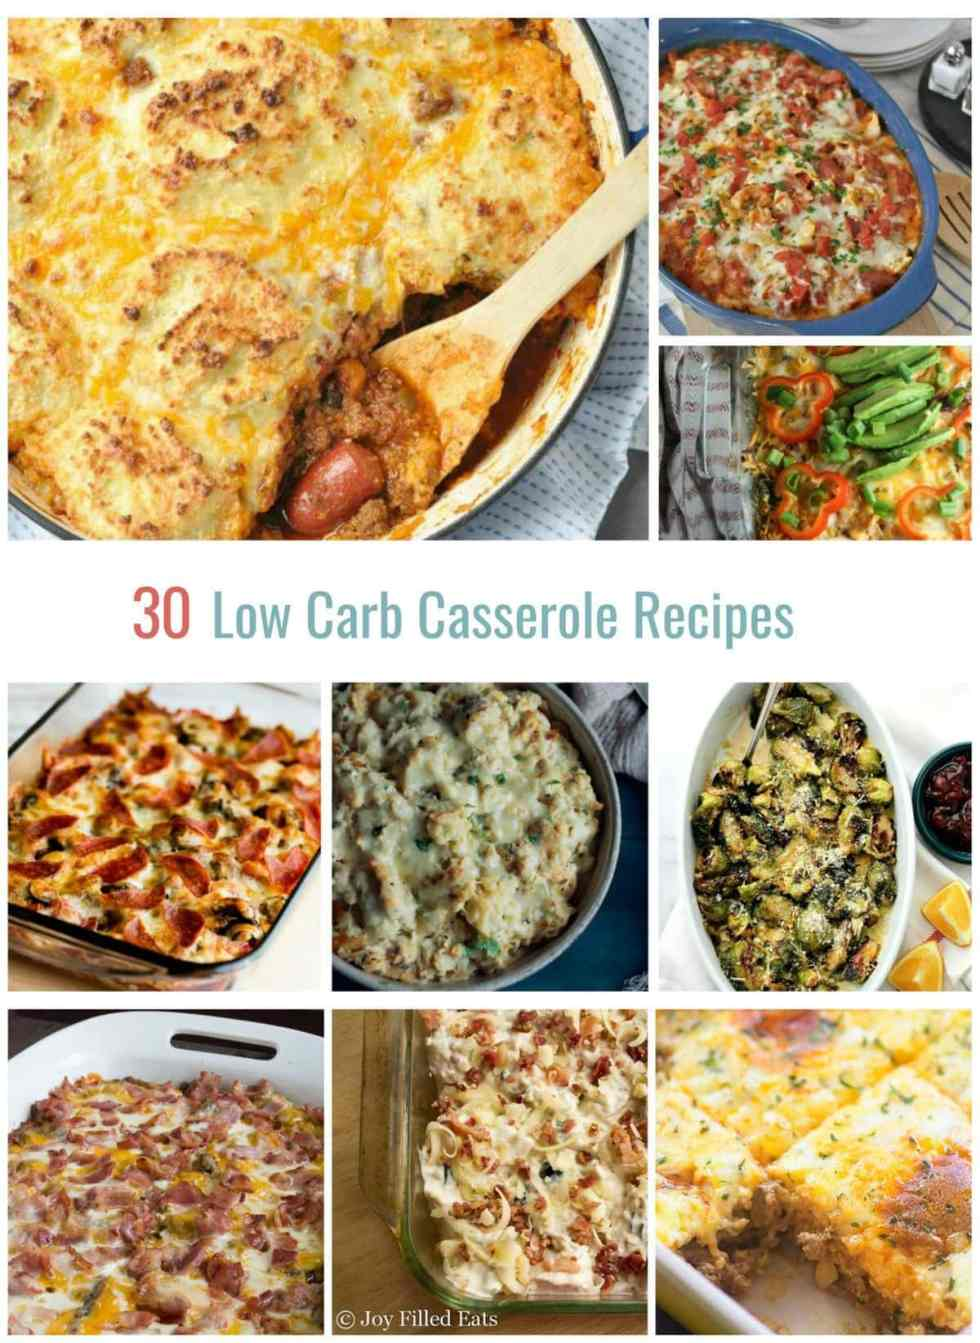 30 Low Carb Casserole Recipes | Peace Love and Low Carb